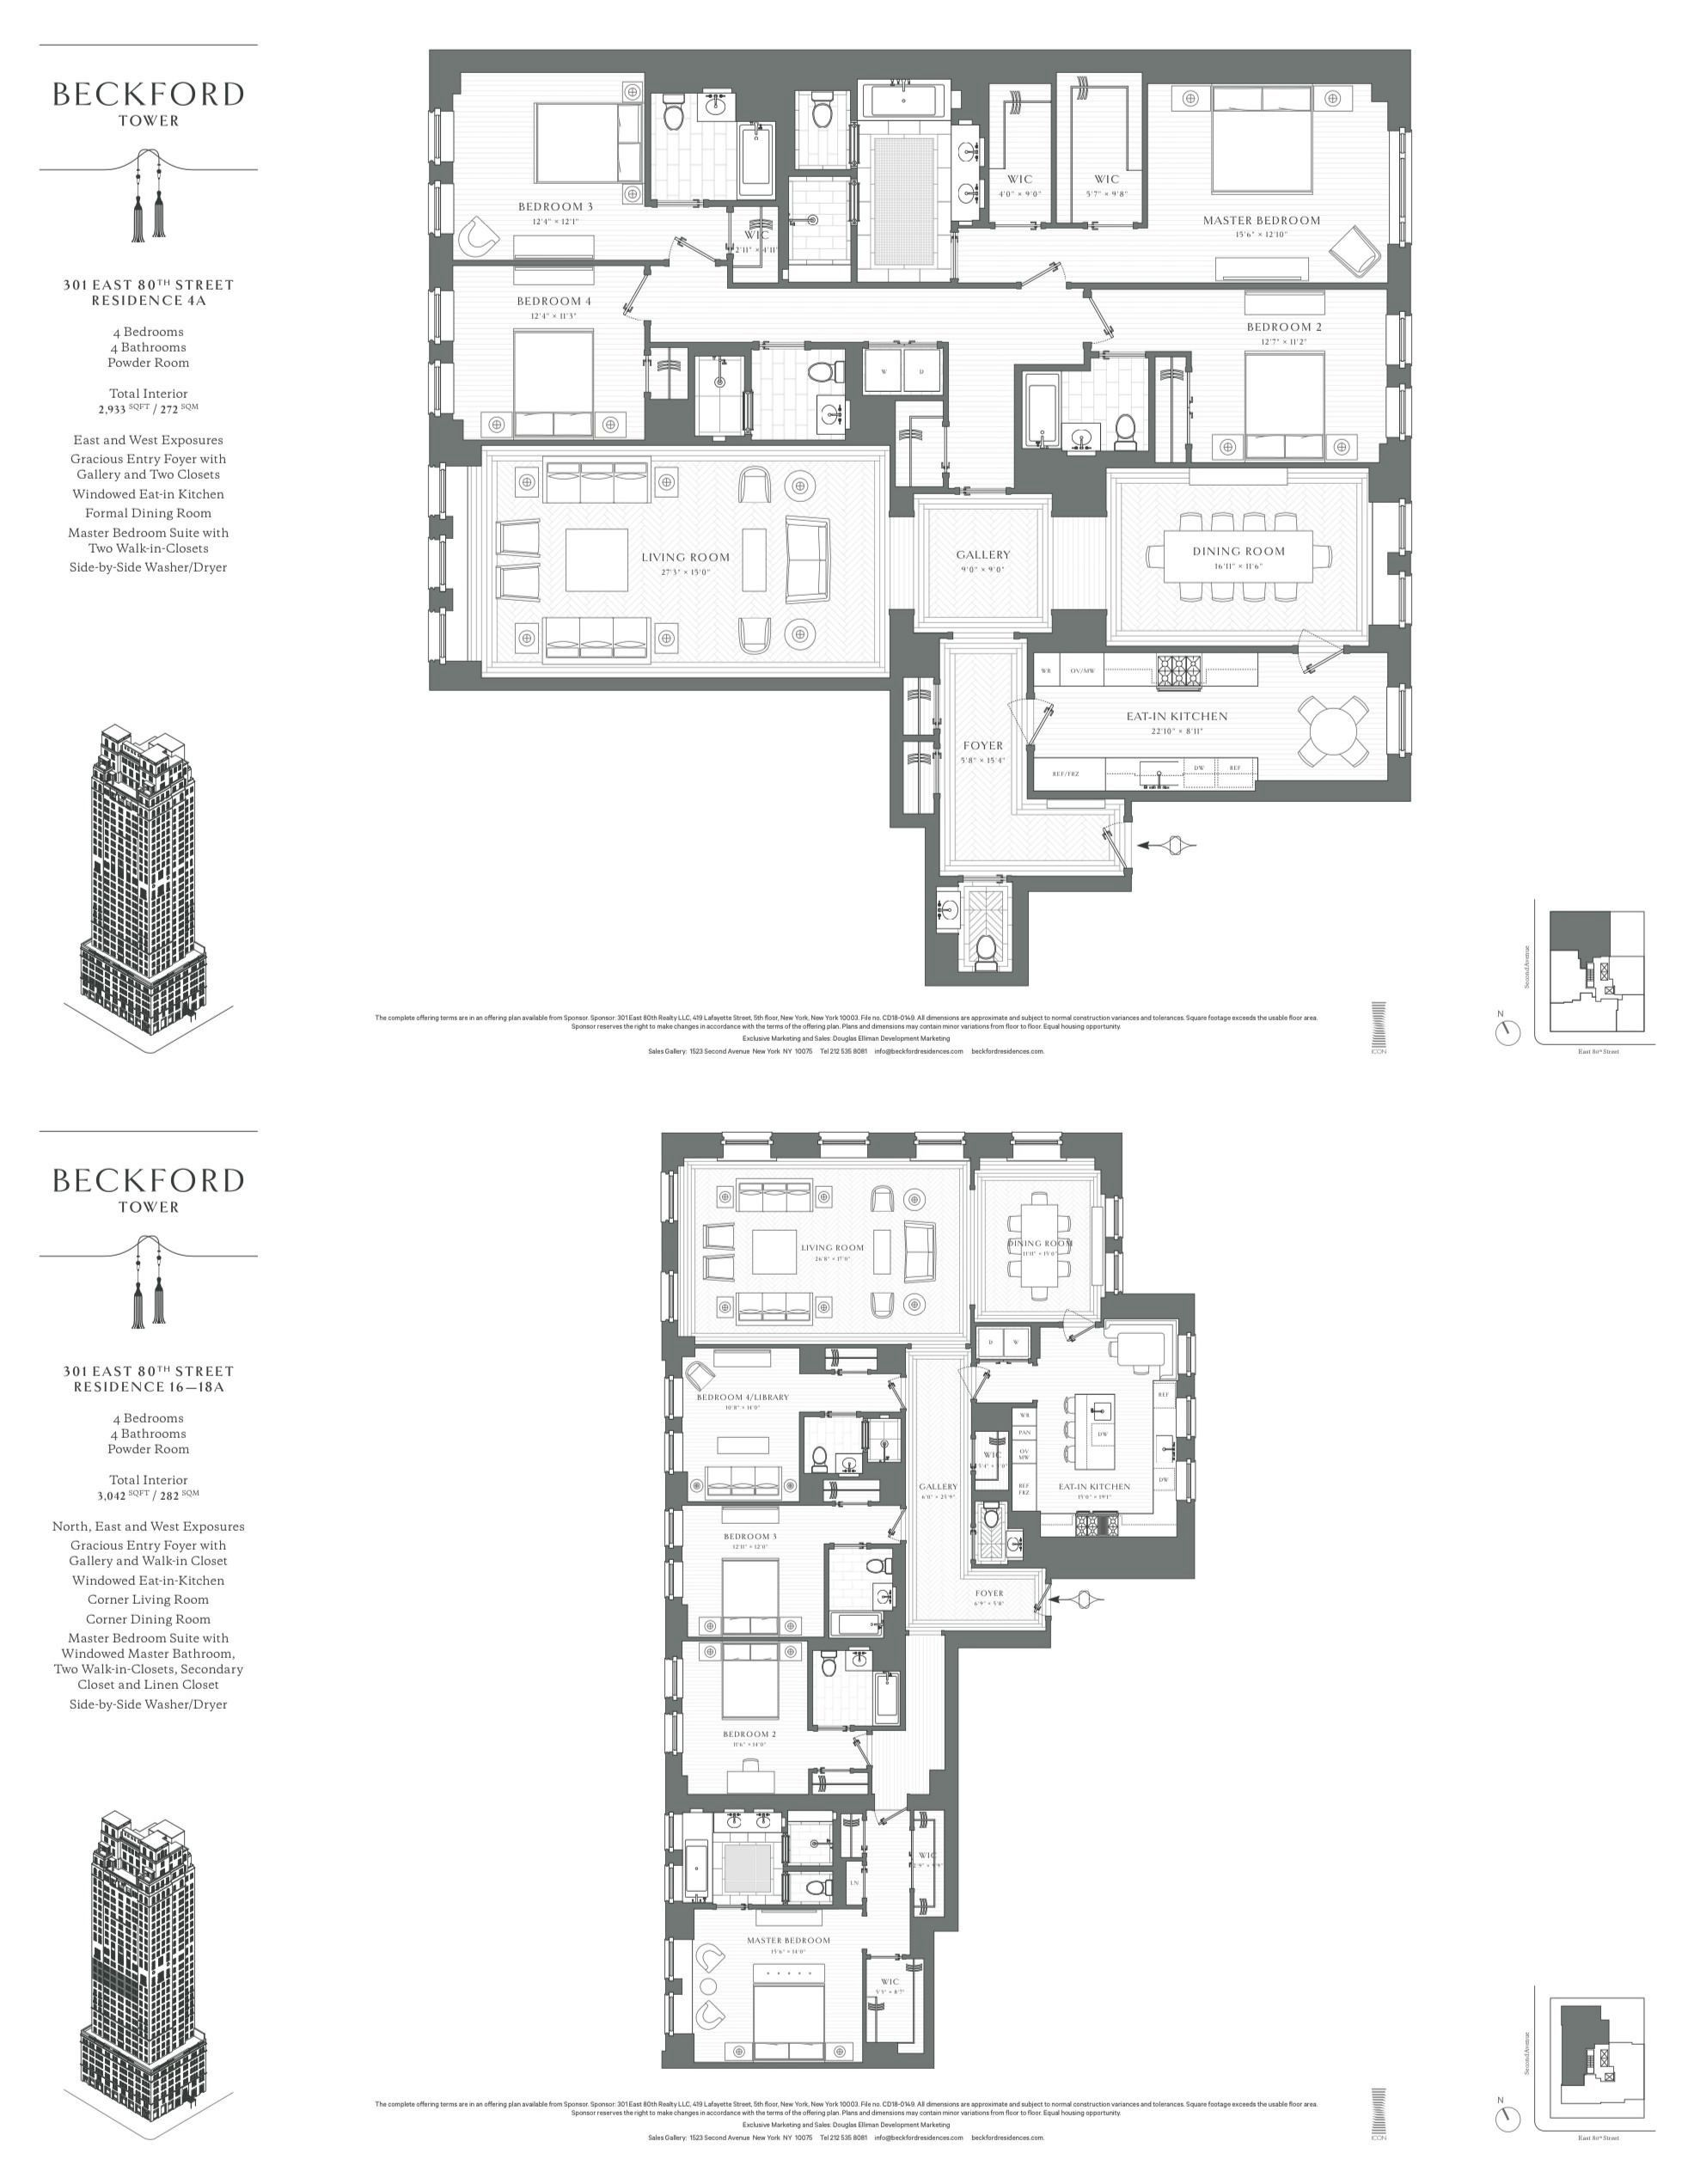 Beckford House Tower Tower Residence A Architectural Floor Plans Apartment Floor Plans City Living Apartment